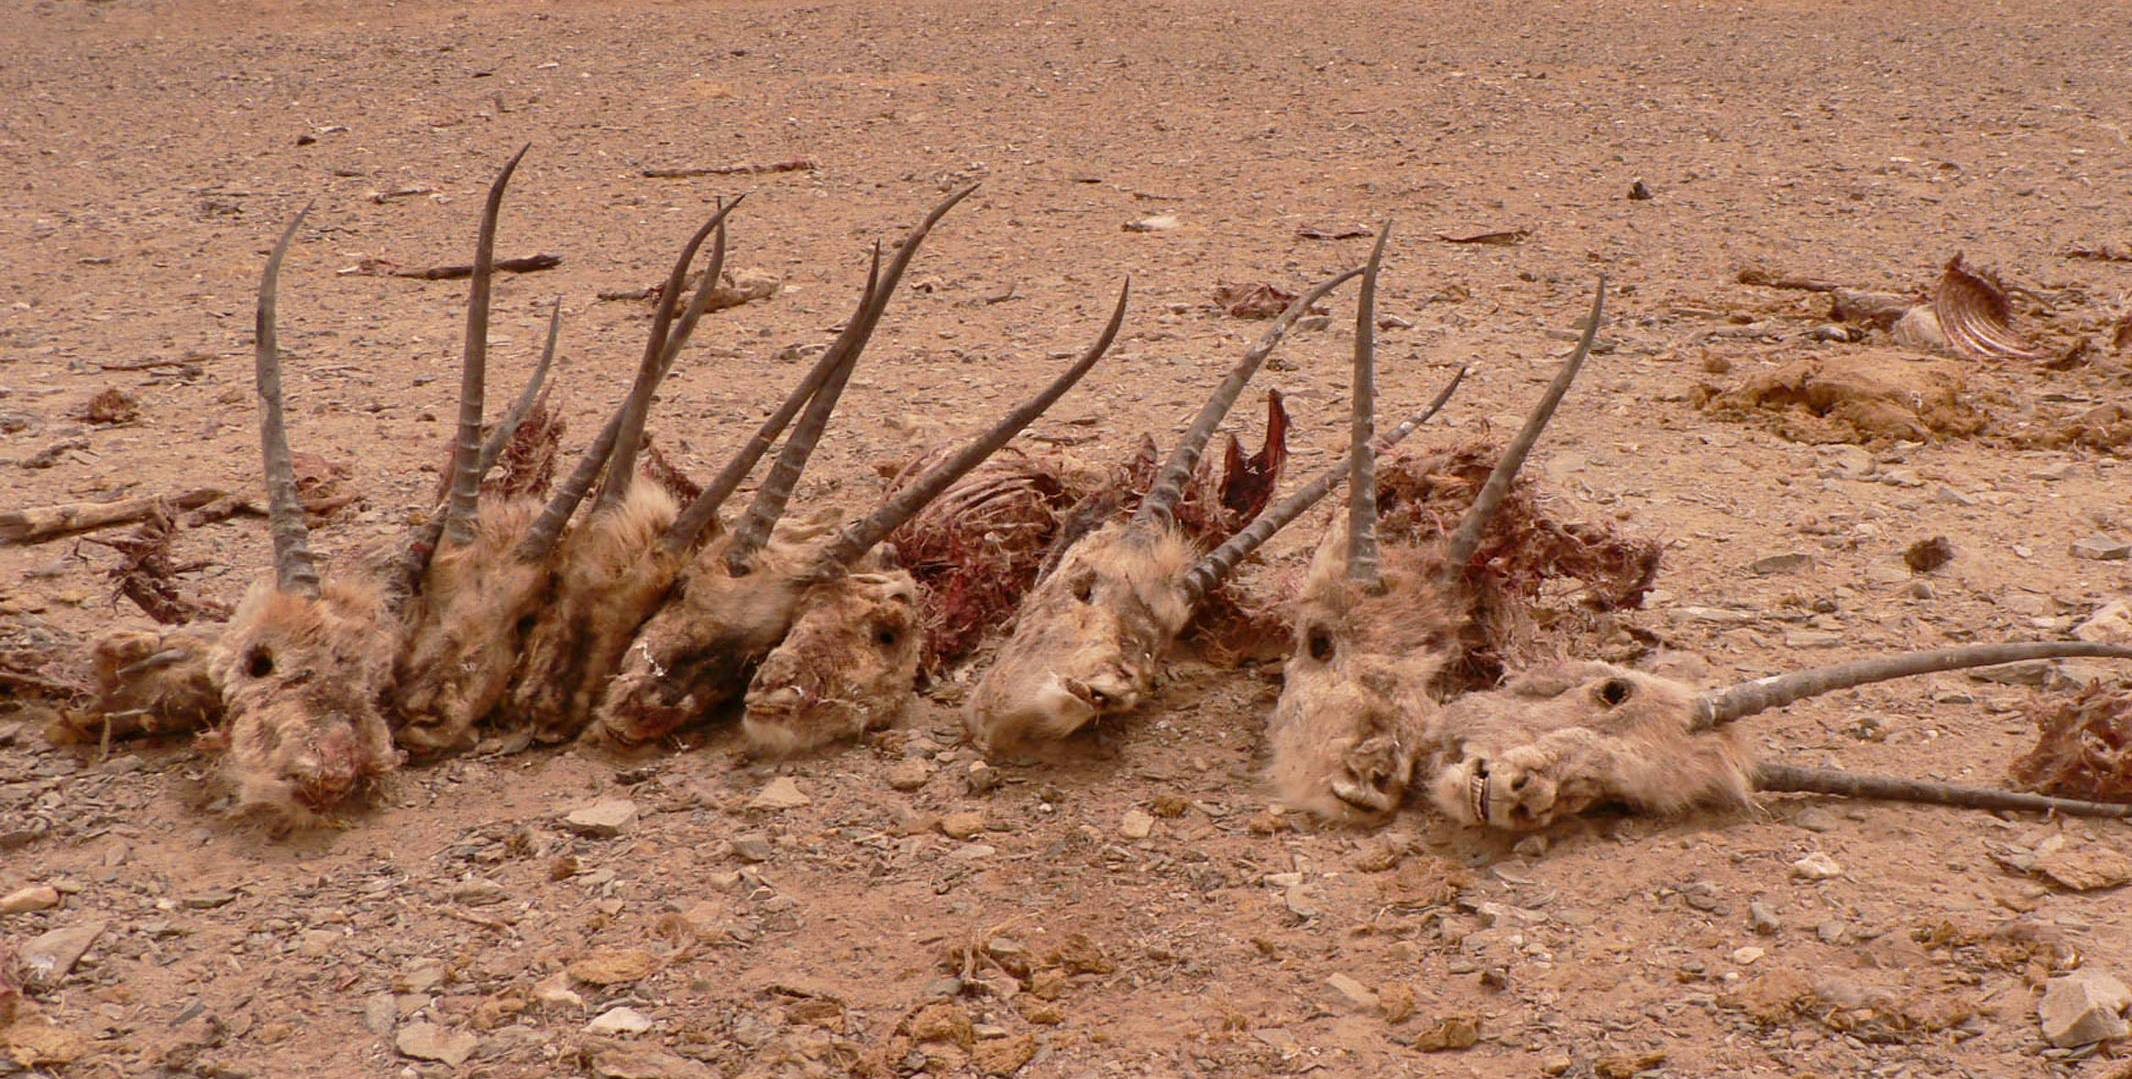 Tibetan antelopes slaughtered by poachers in the Changtang region